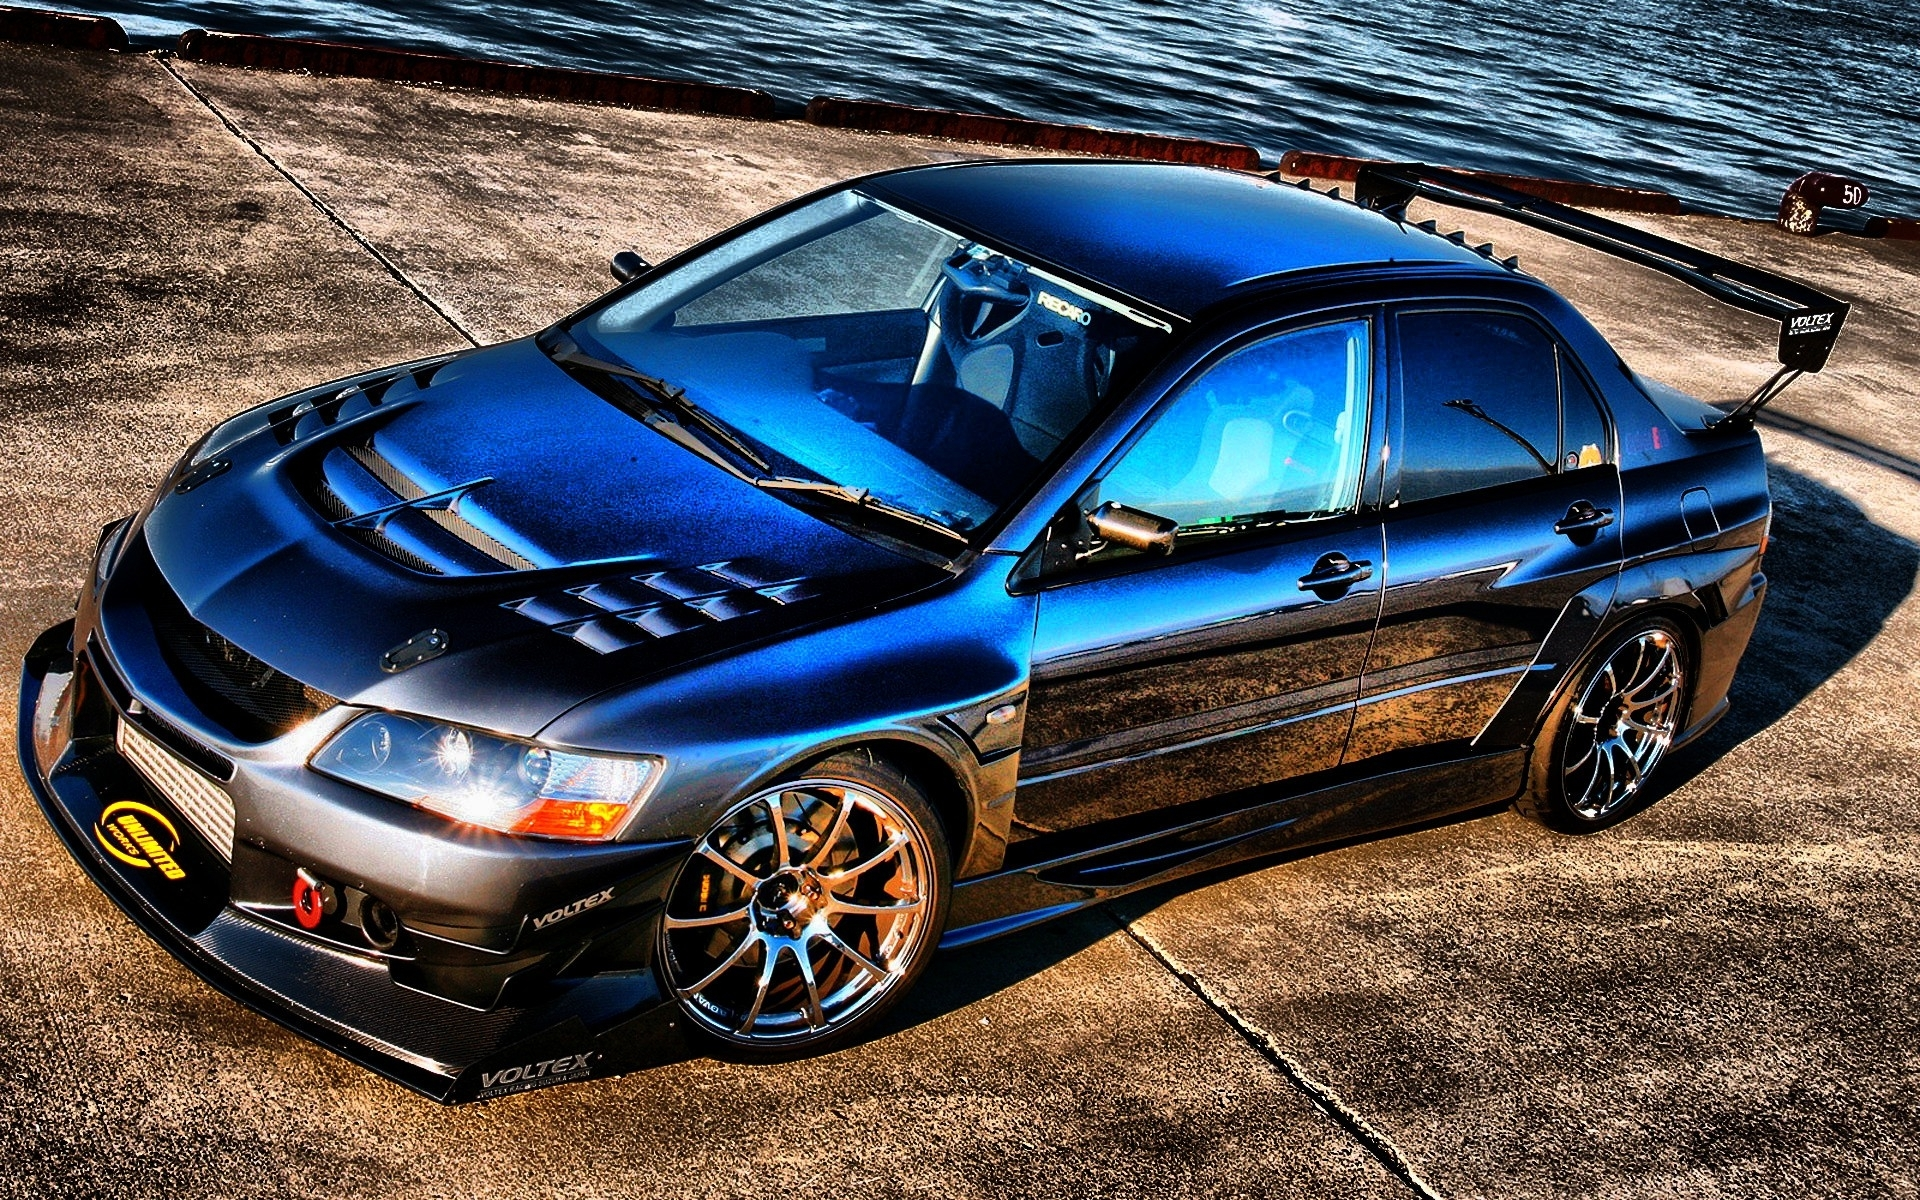 44542 download wallpaper Transport, Auto, Mitsubishi screensavers and pictures for free